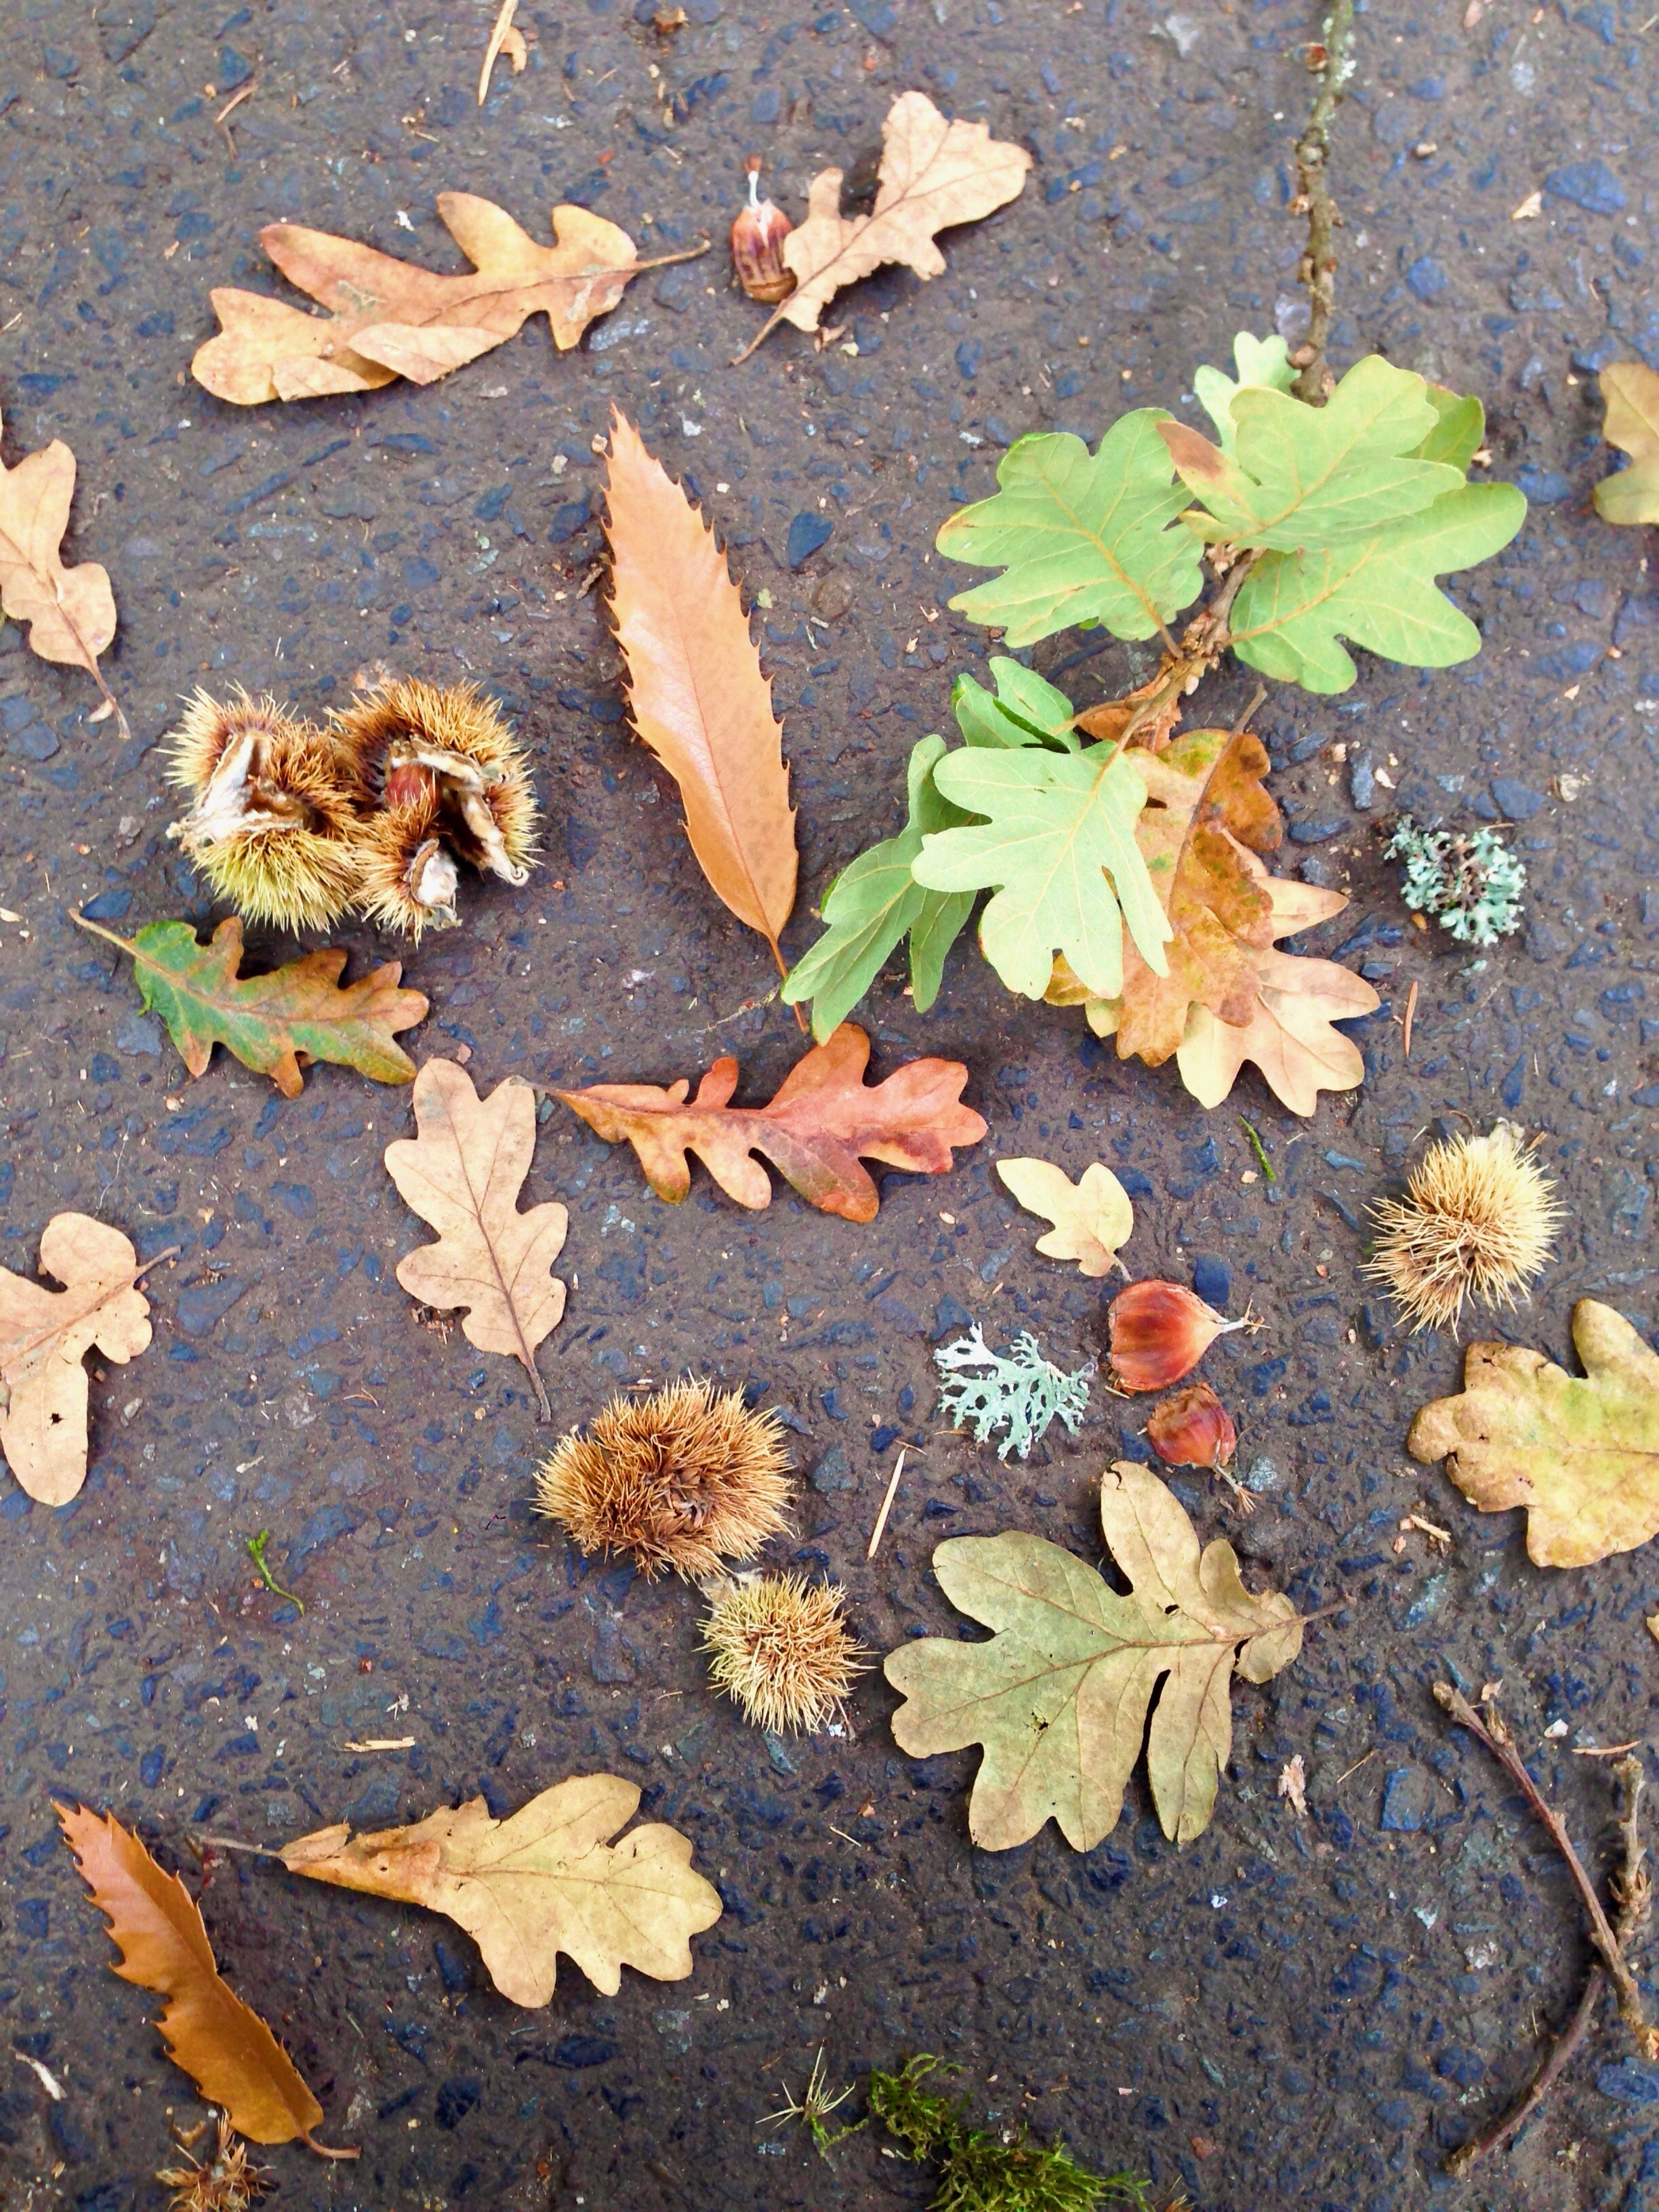 shapes + colors + texture of nature